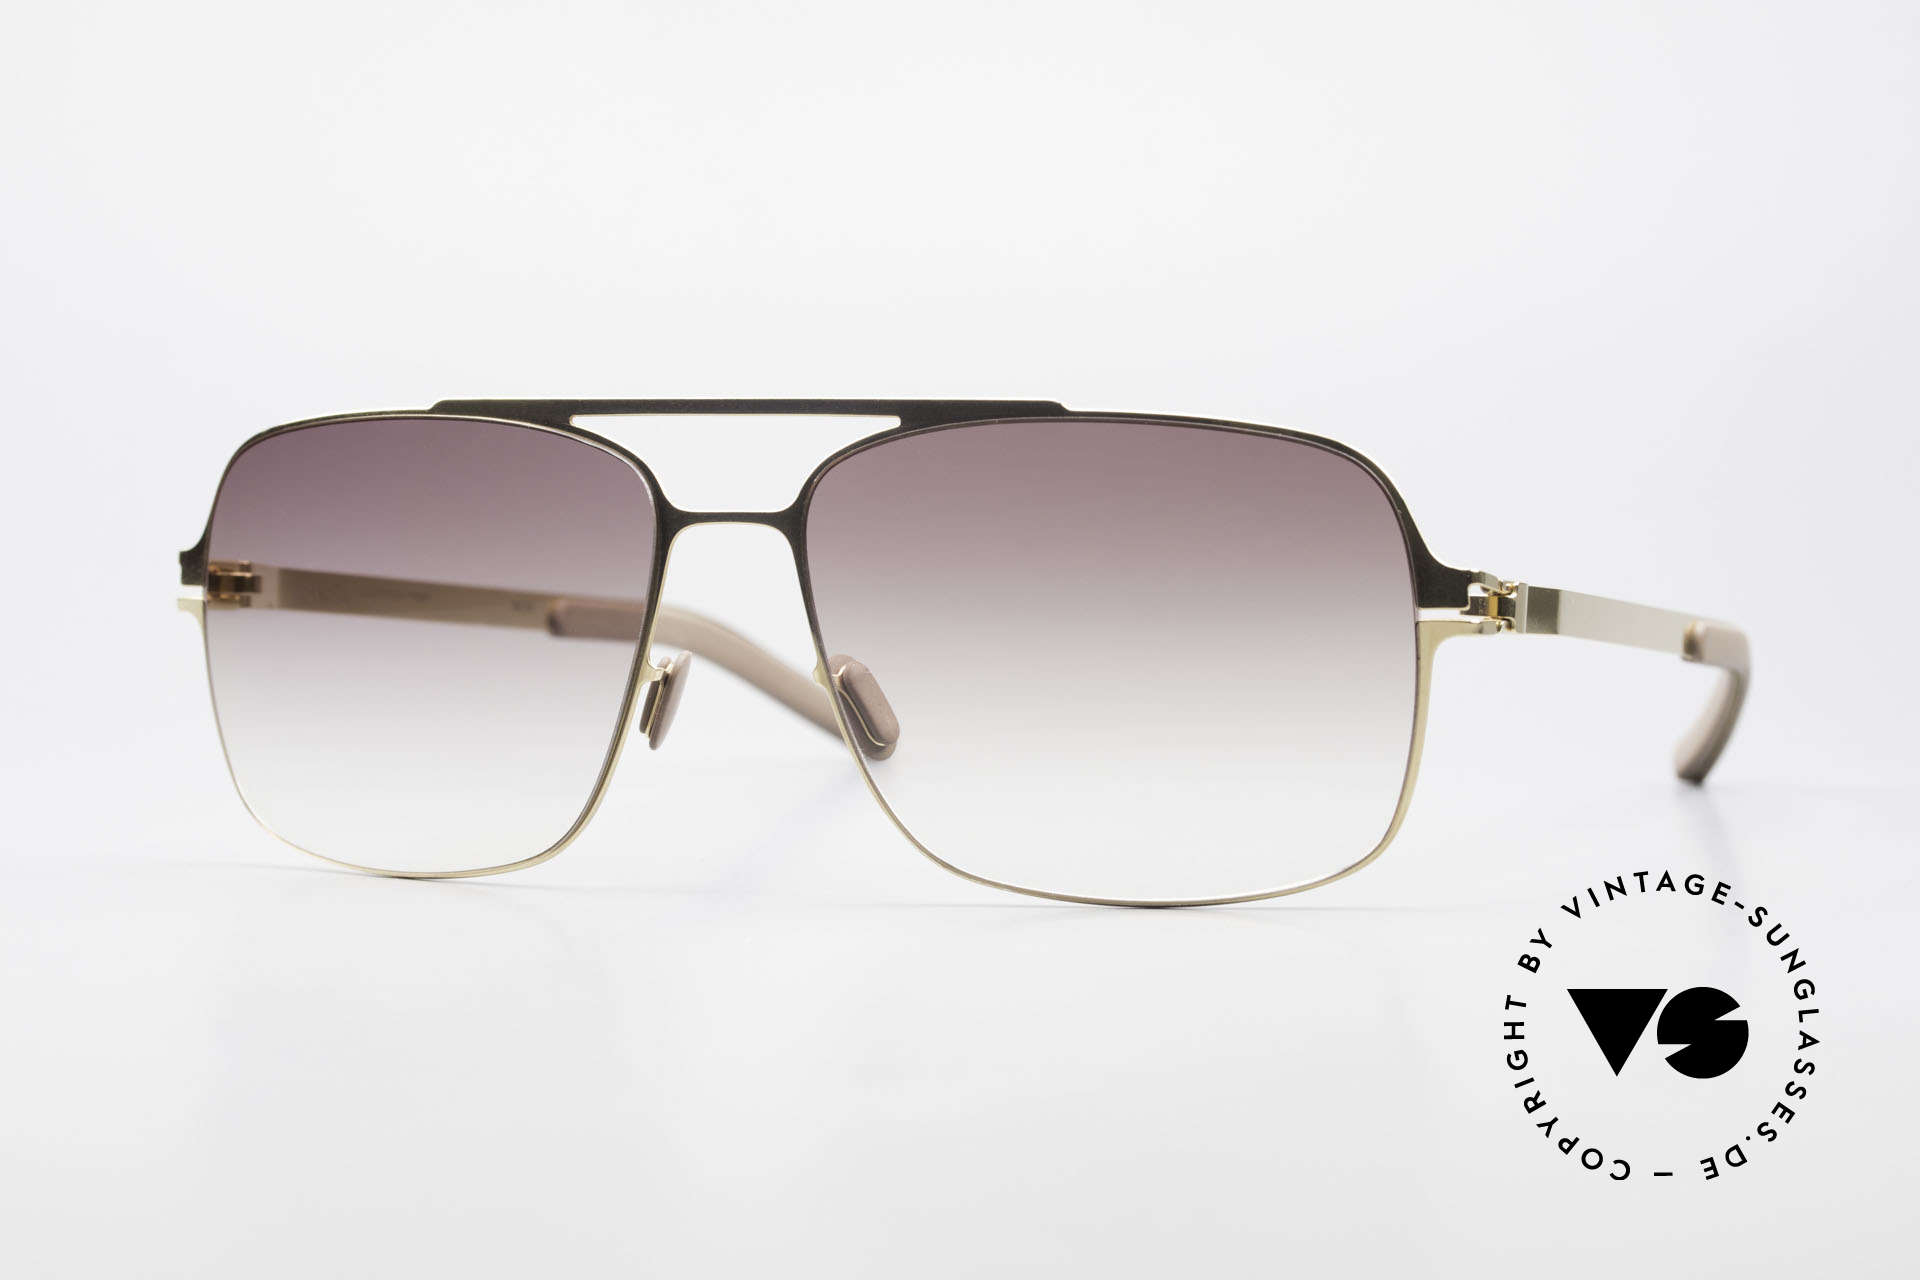 Mykita Troy Mykita Collection No 1 Shades, original VINTAGE MYKITA men's sunglasses from 2010, Made for Men